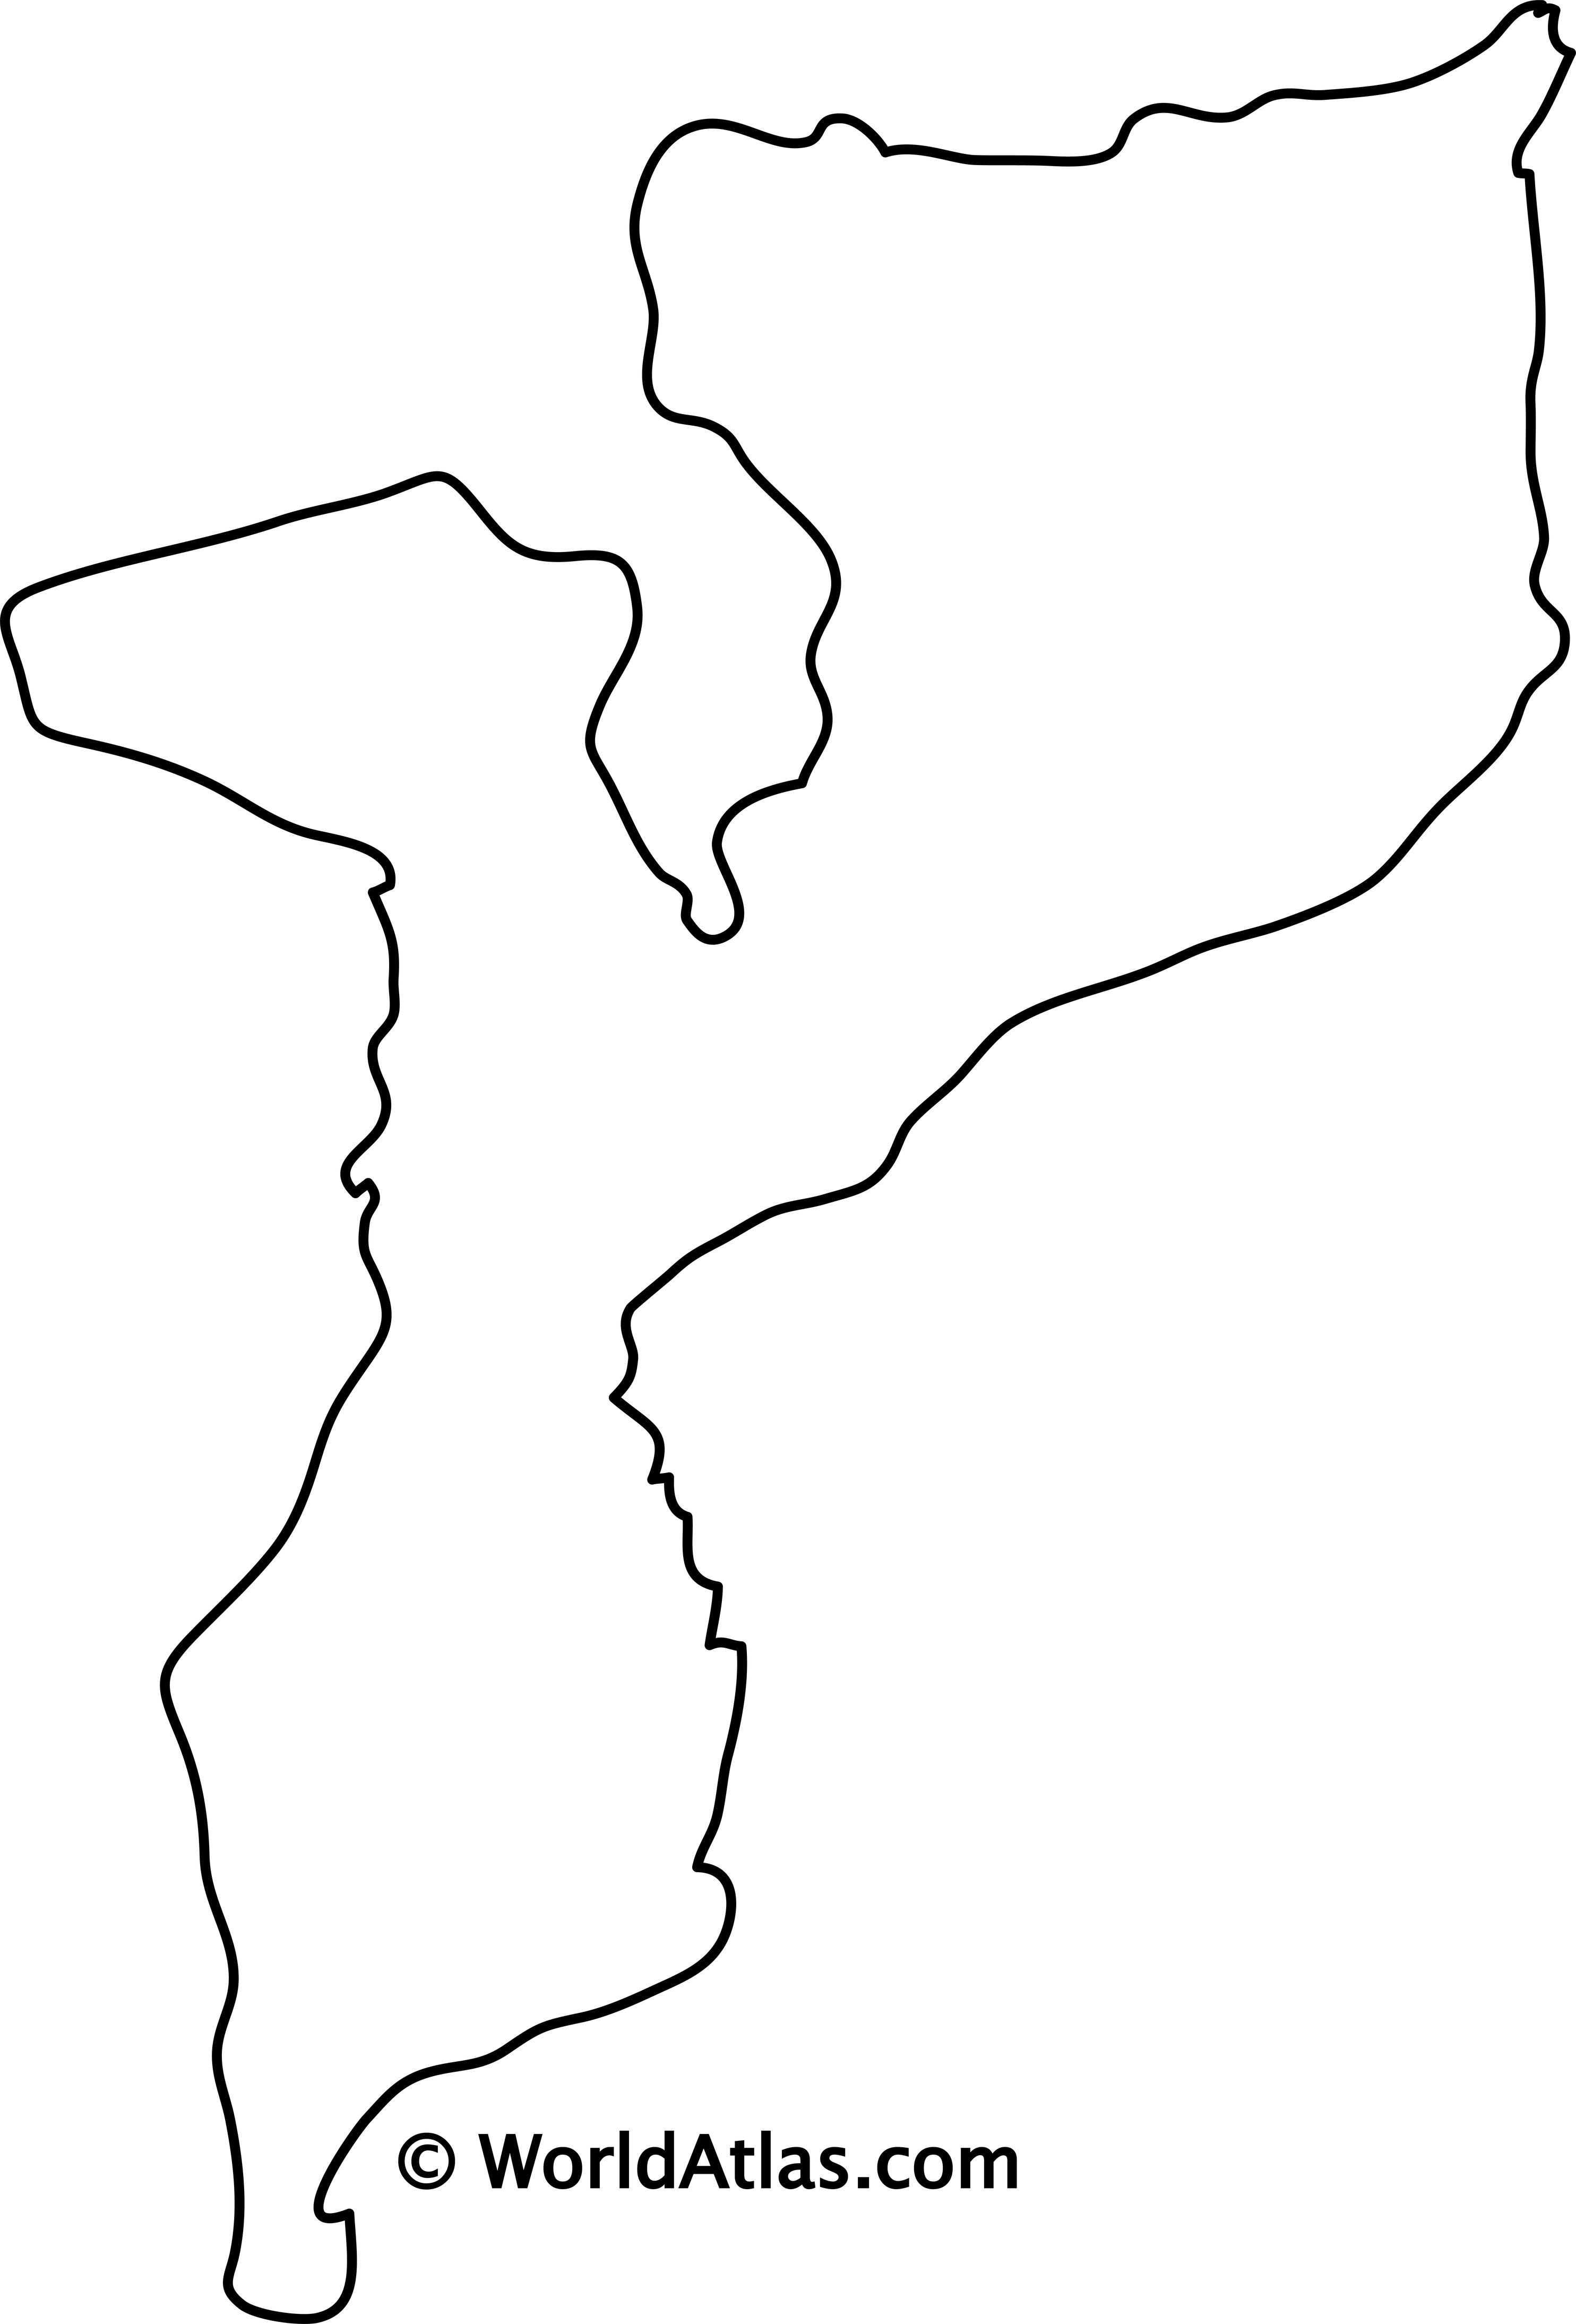 Blank Outline Map of Mozambique